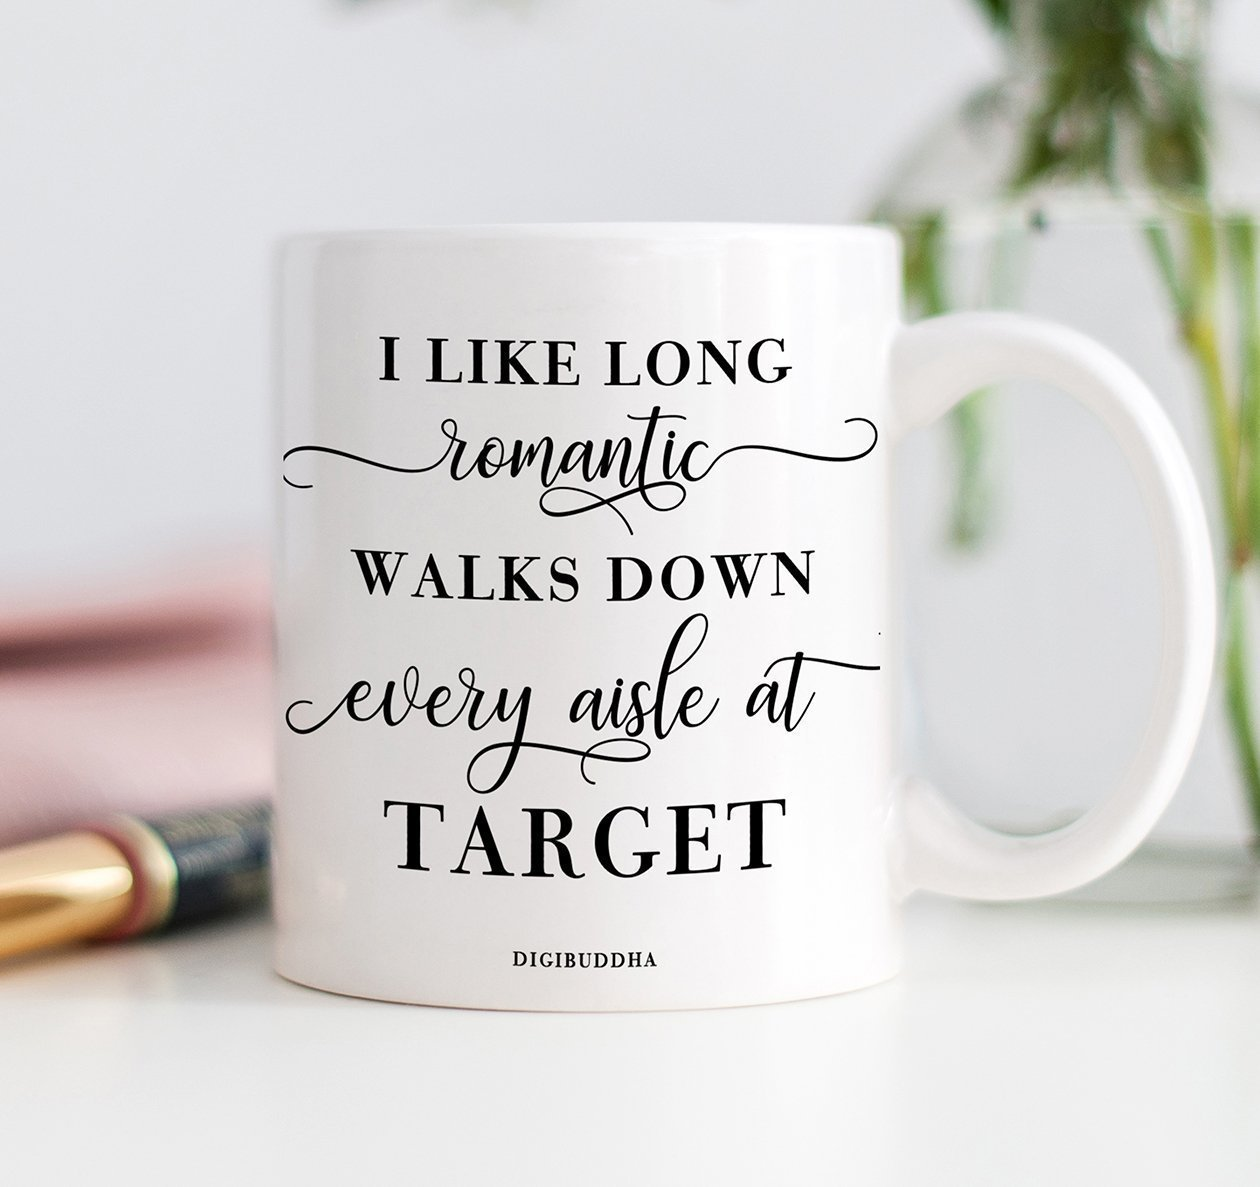 I Like Long Romantic Walks Down Every Aisle At Target Funny Mug Quote Christmas Present Idea Birthday Gifts For Women Mom